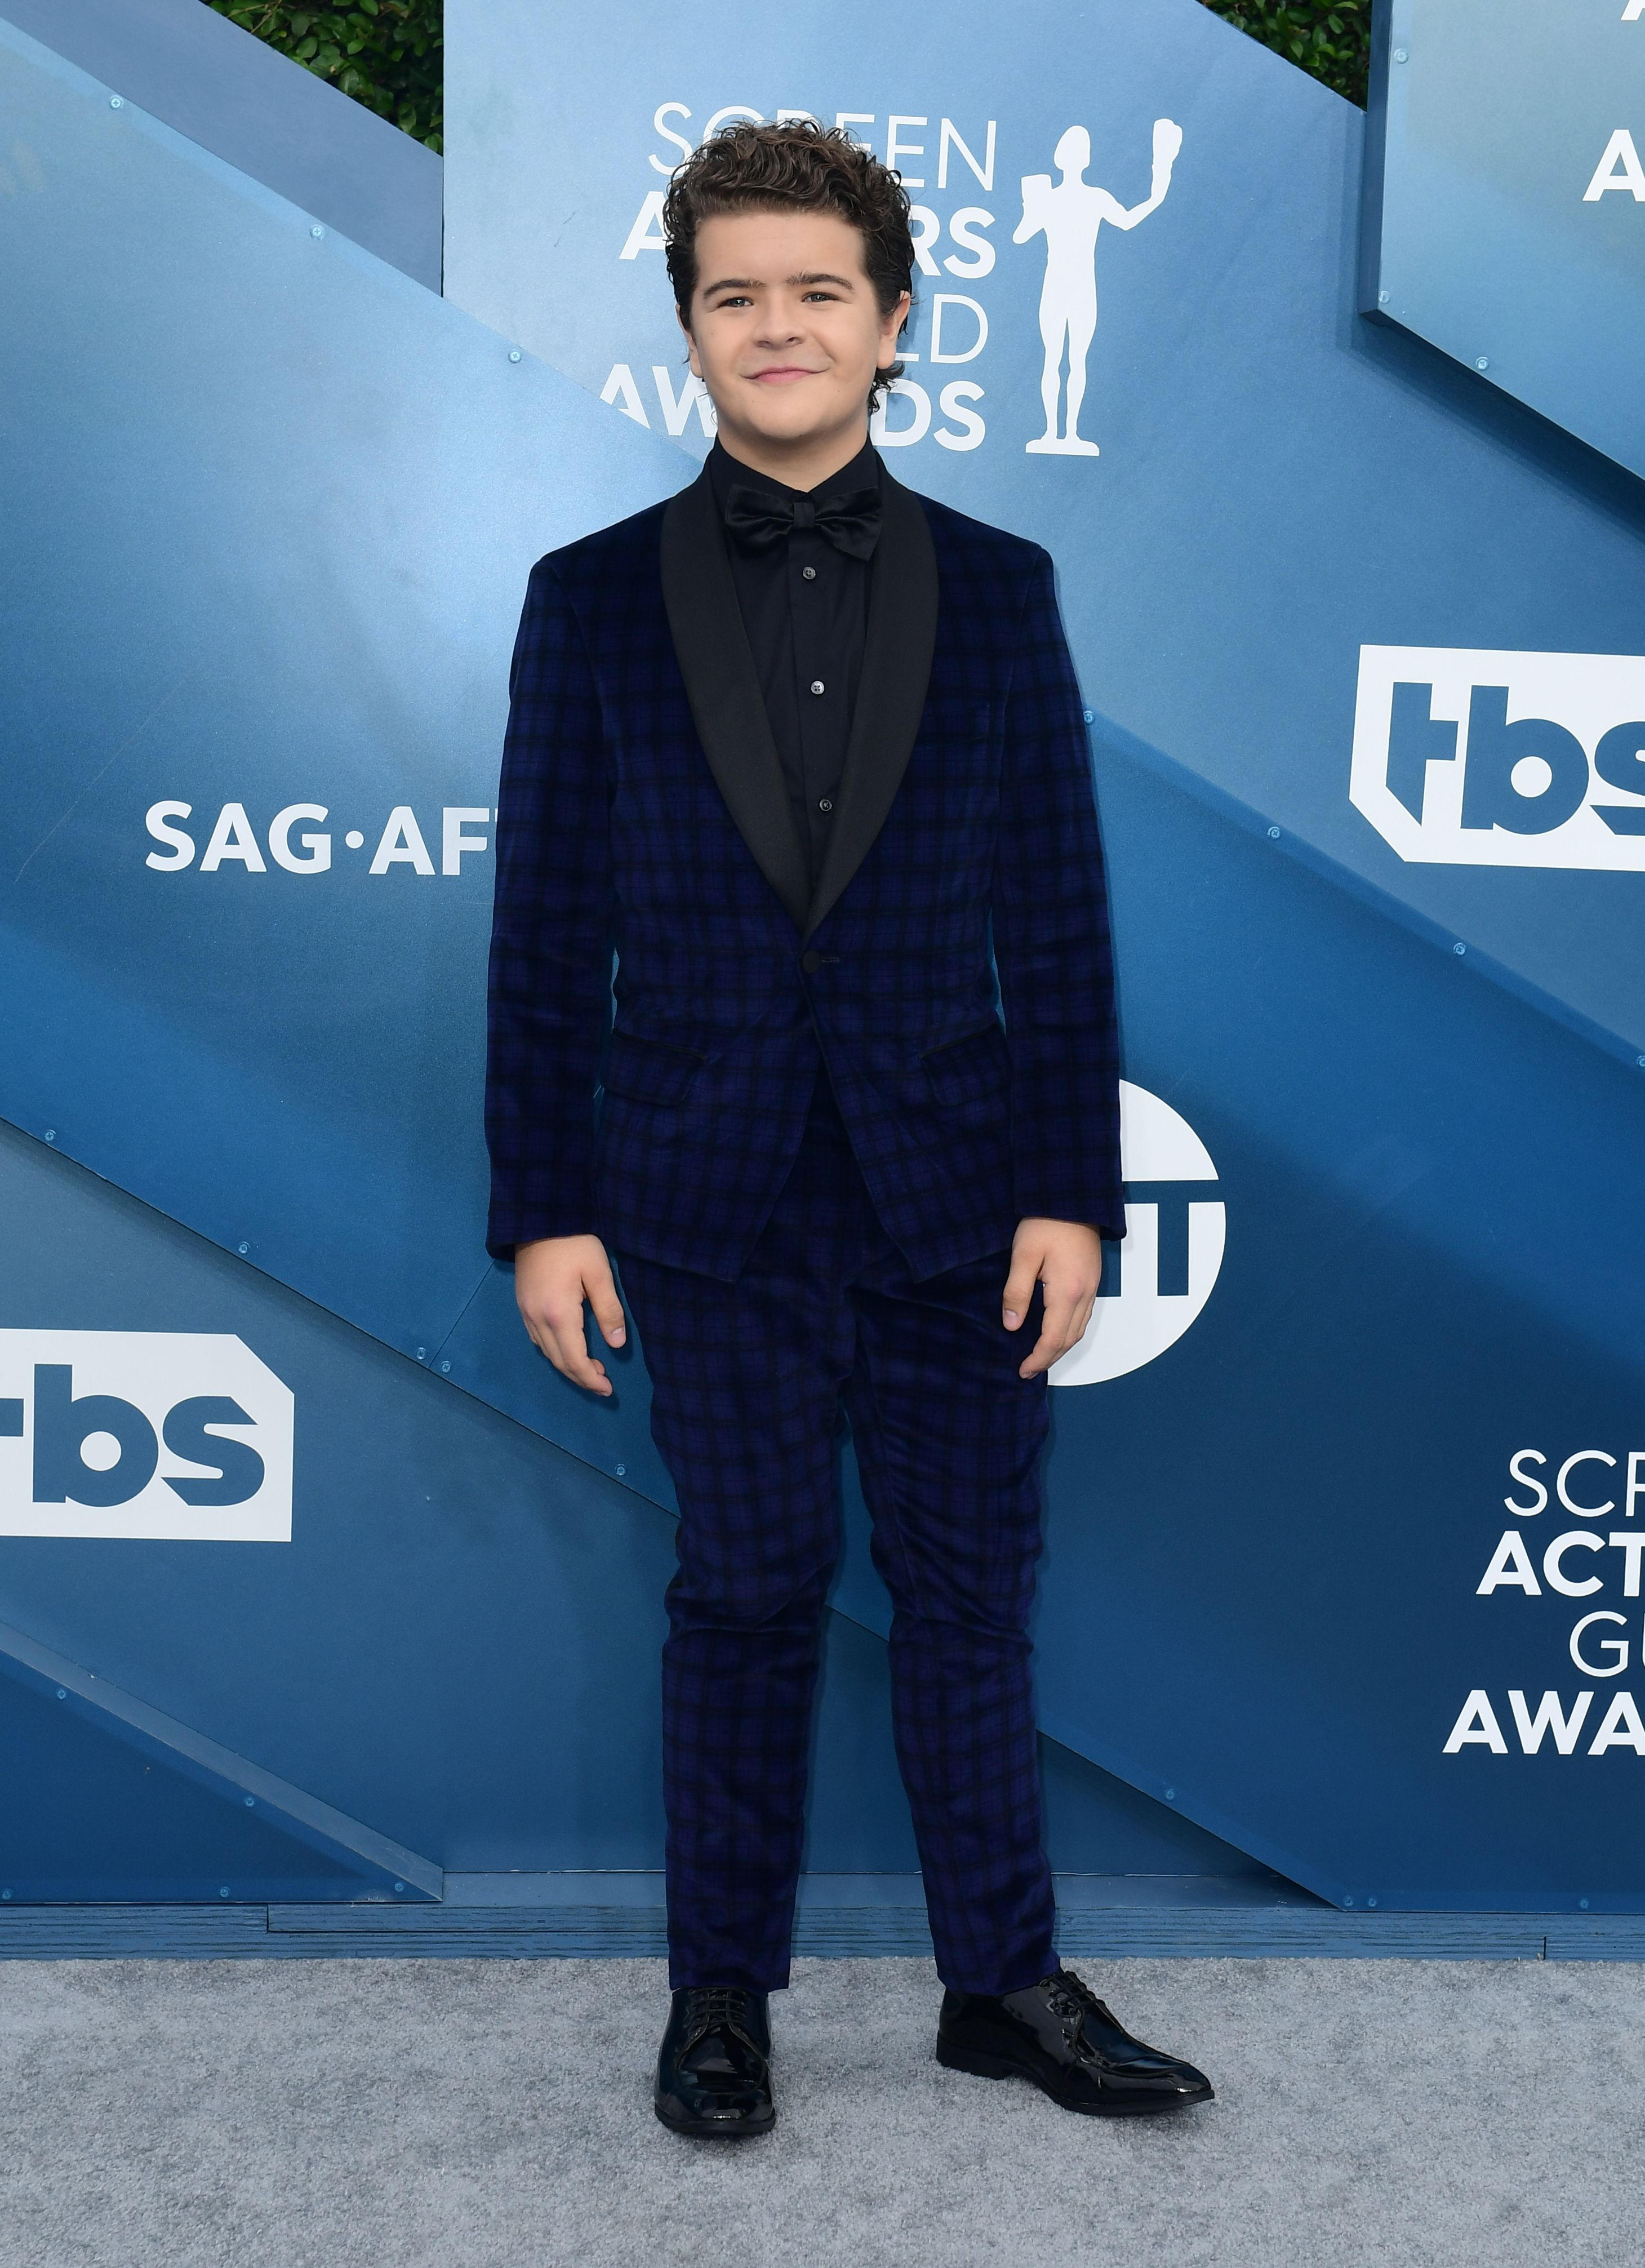 Actor Gaten Matarazzo arrives for the 26th Annual Screen Actors Guild Awards at the Shrine Auditorium in Los Angeles on January 19, 2020. (Photo by FREDERIC J. BROWN / AFP) (Photo by FREDERIC J. BROWN/AFP via Getty Images)